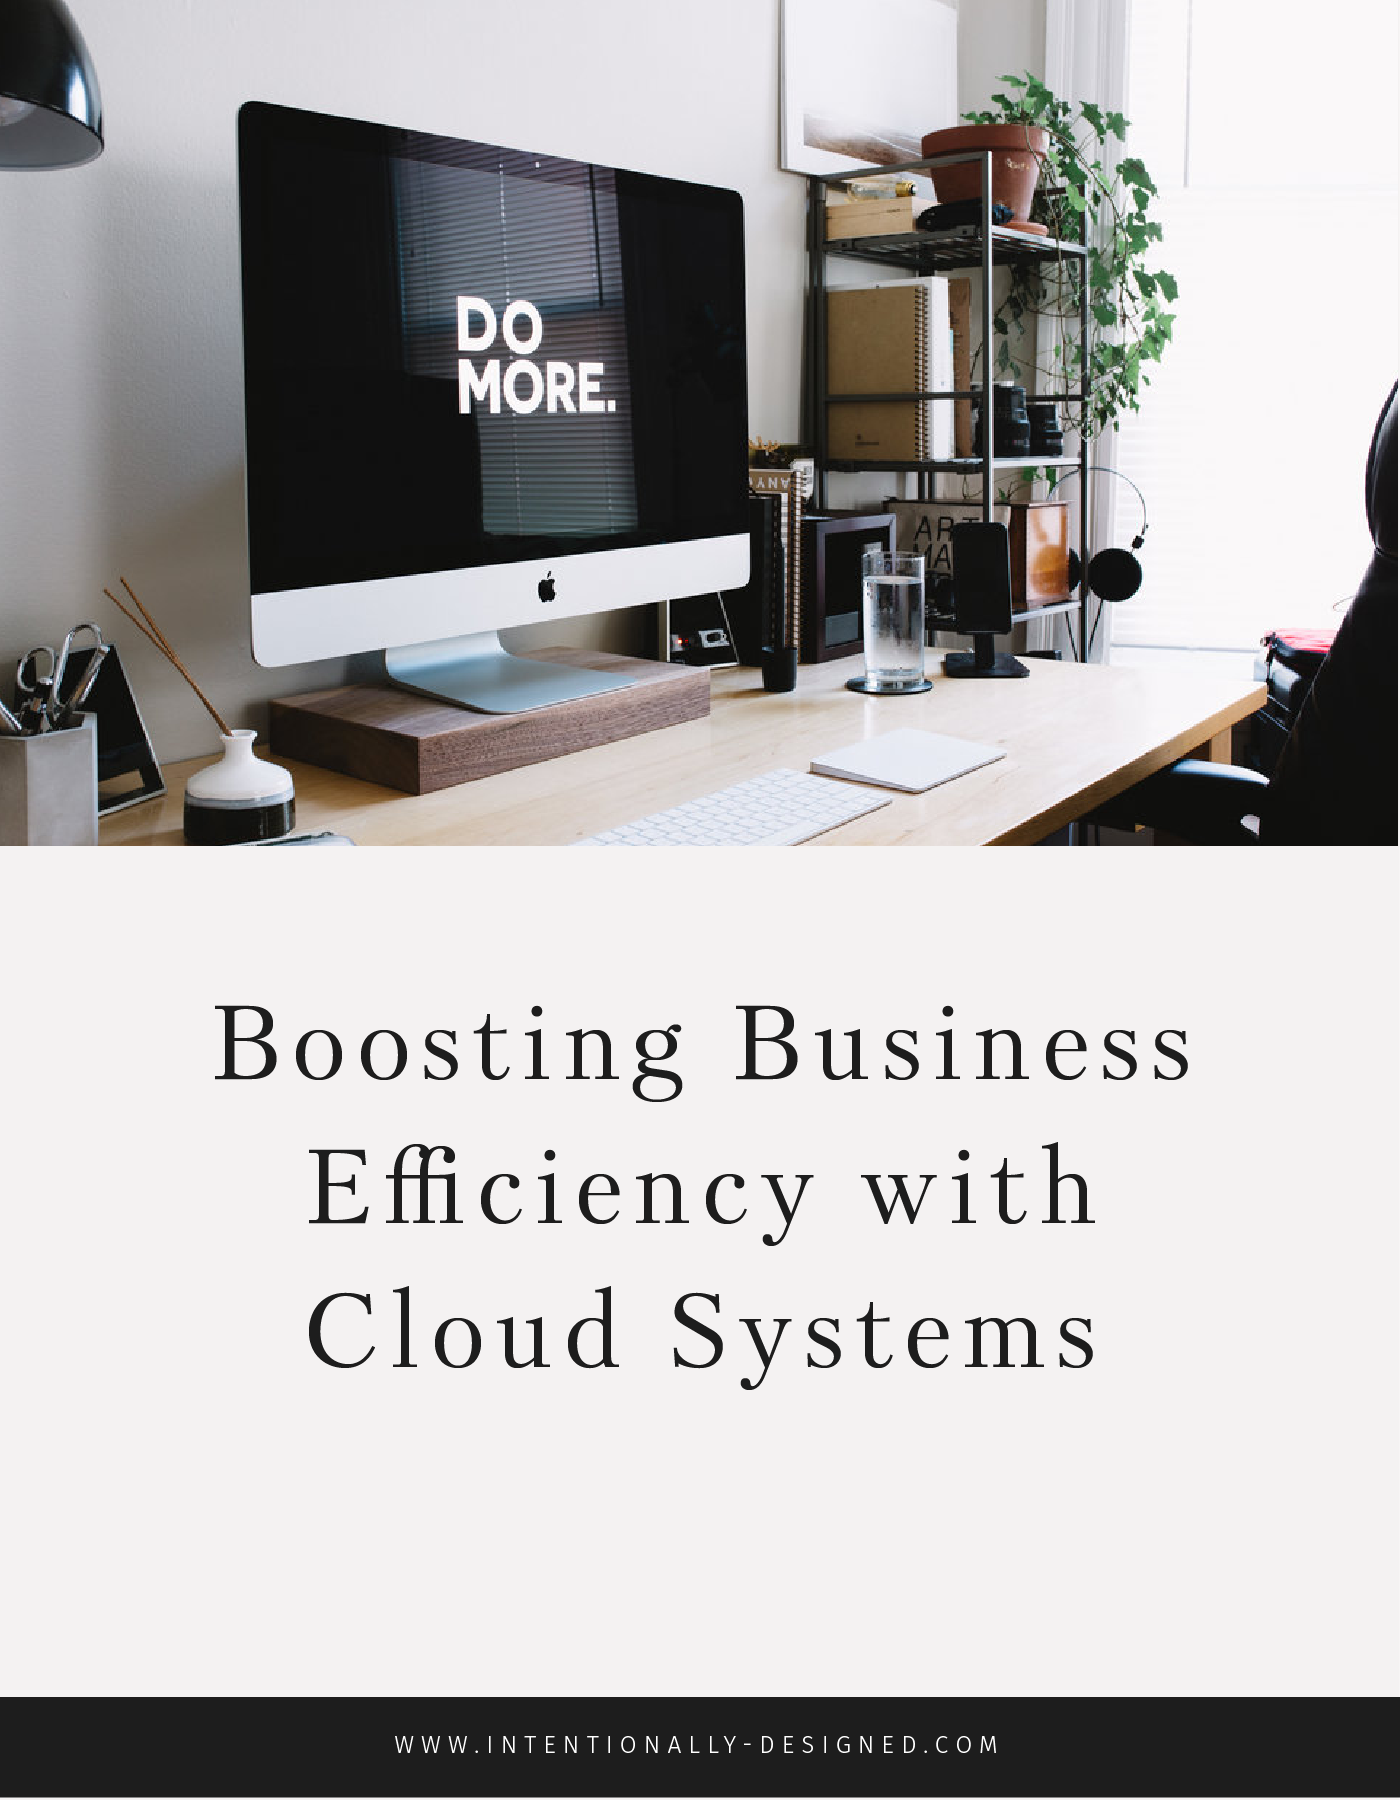 Boosting Business Efficiency with Cloud Systems